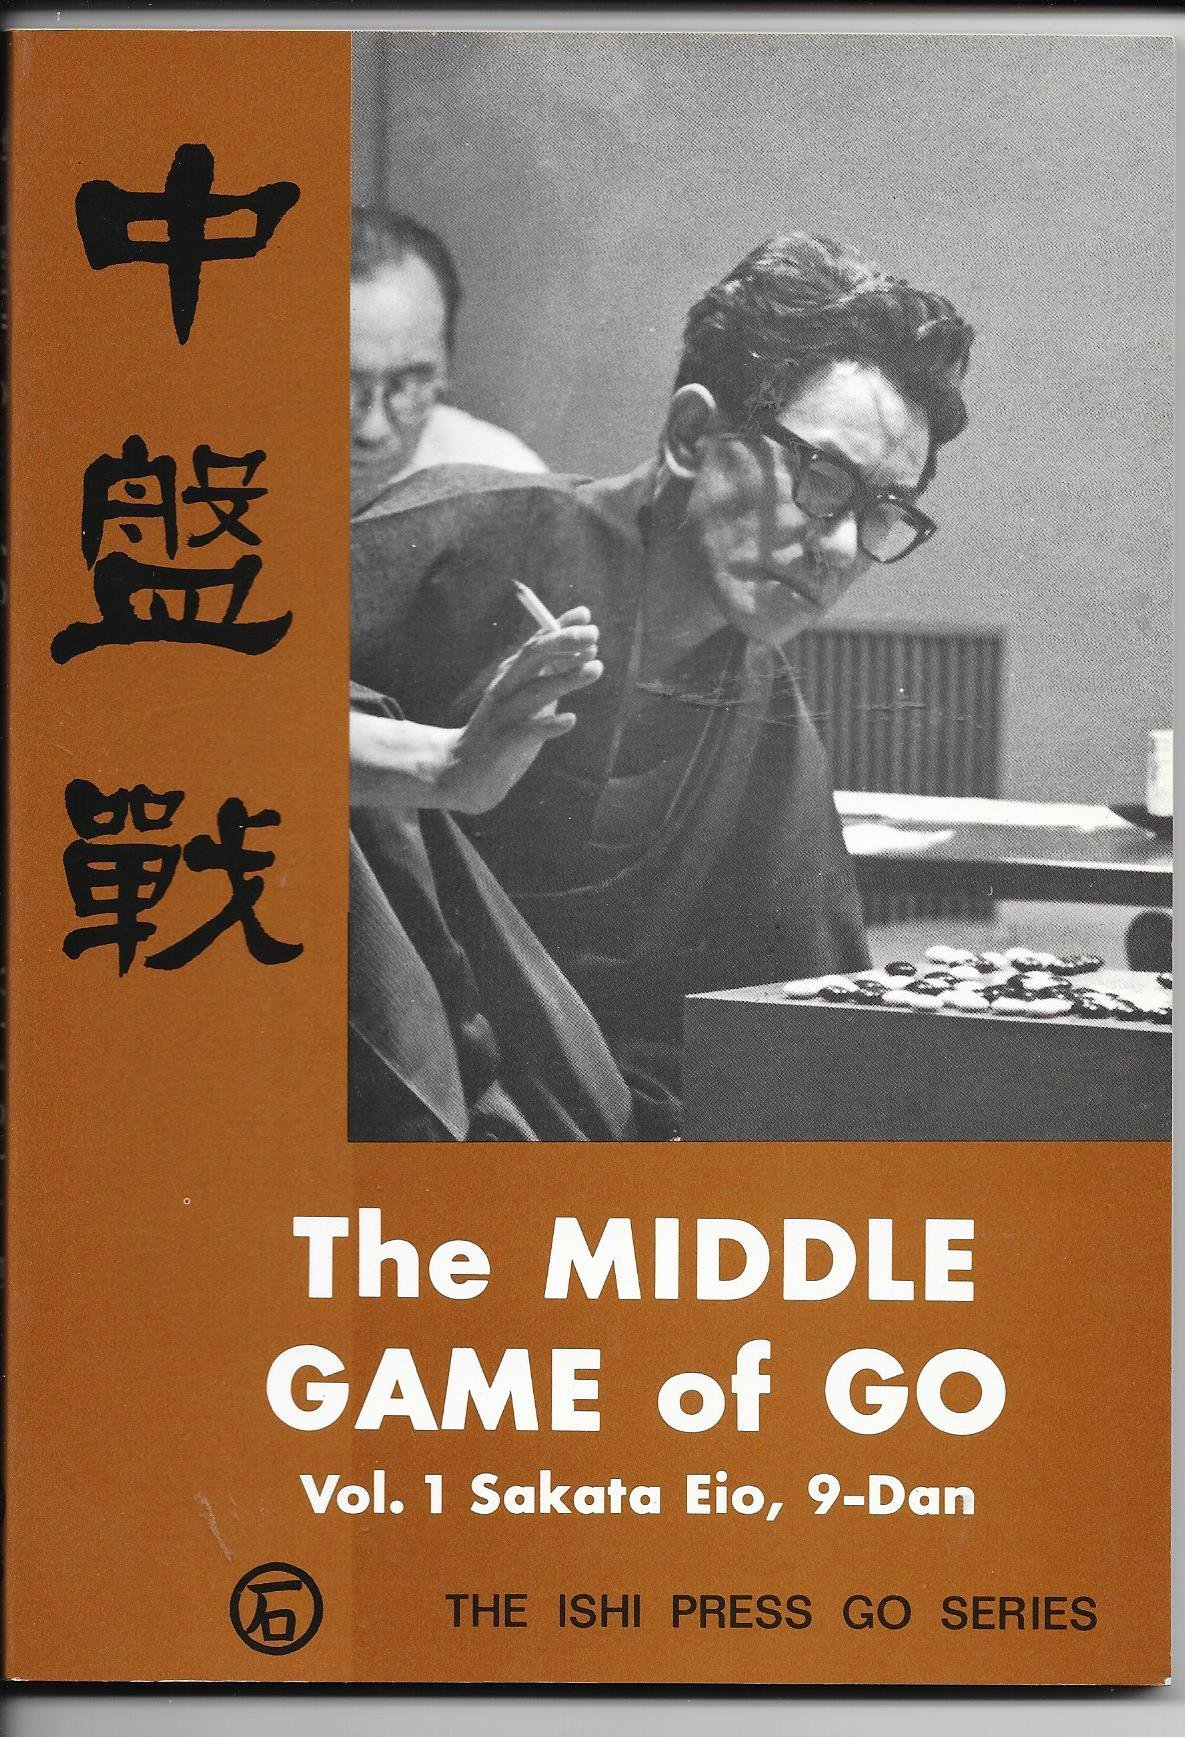 The Middle Game of Go, Volume 1 Sakata Eio, 9-Dan